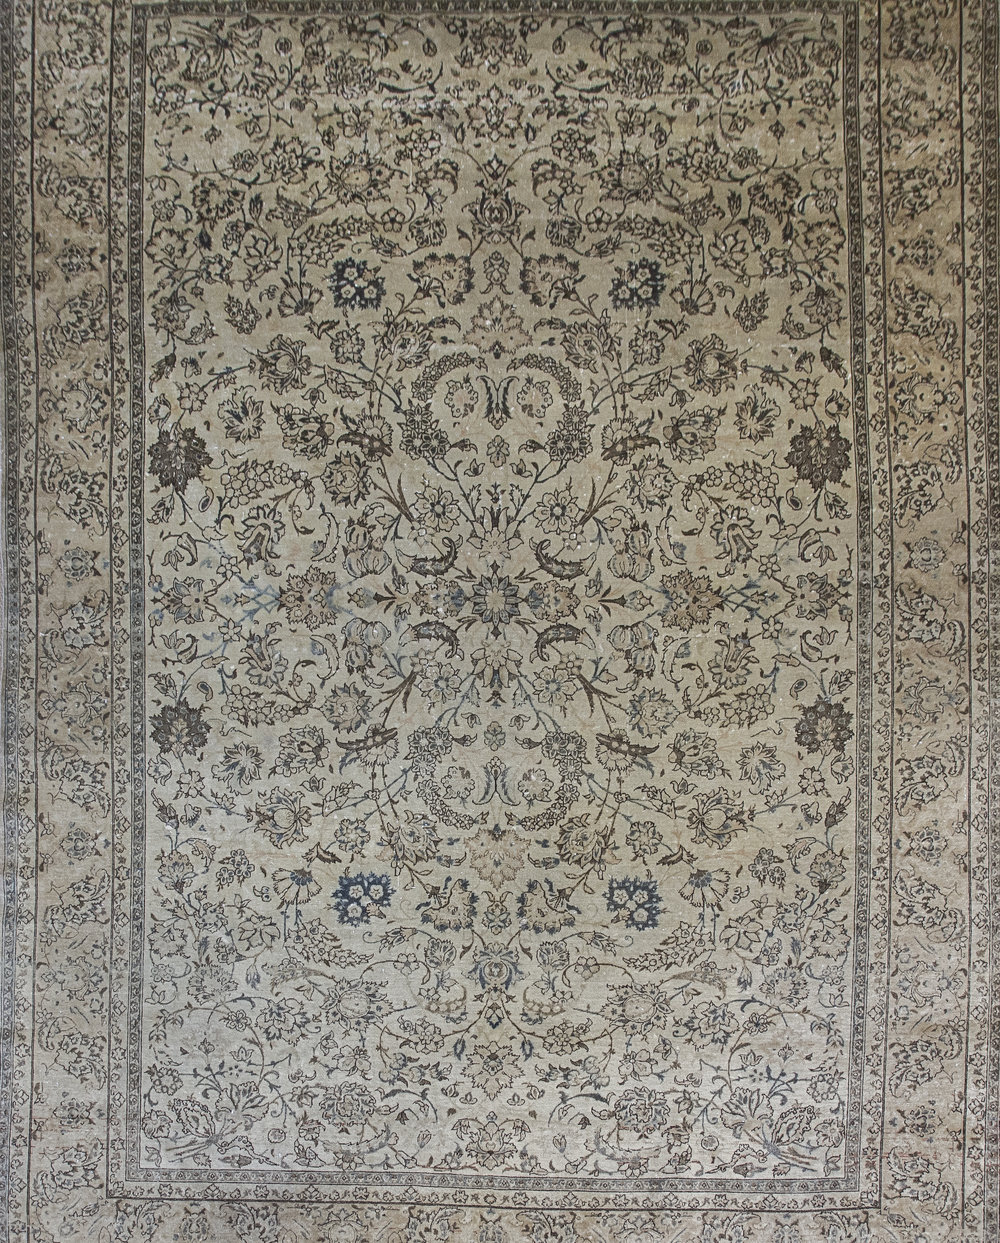 Antique carpets & Rugs -